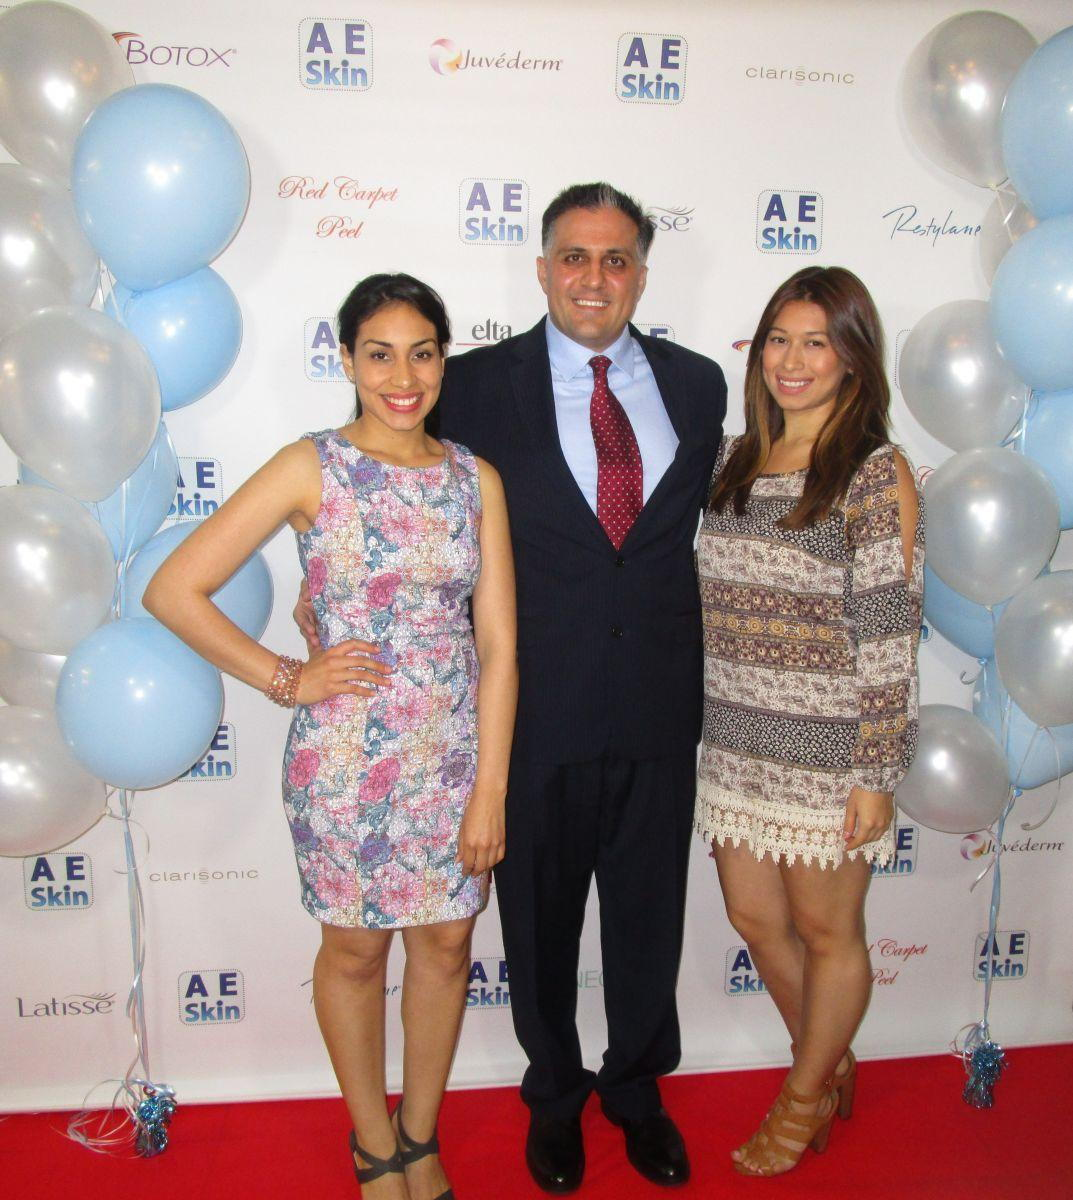 Dr. Alex with Karla and Erica